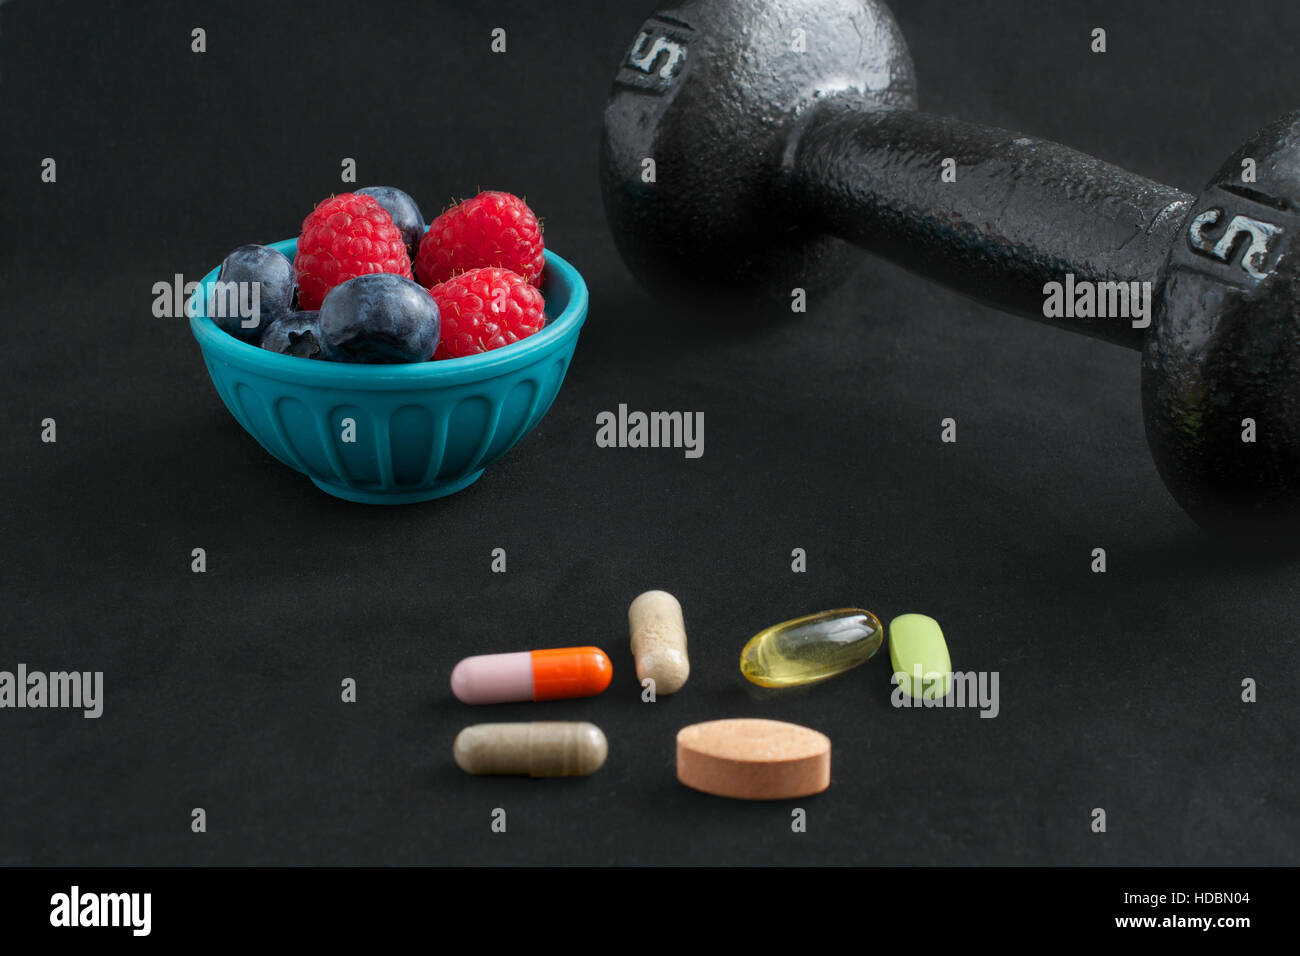 Dumbbell, berries and dietary supplements on black background: Fitness and weight loss concept. - Stock Image